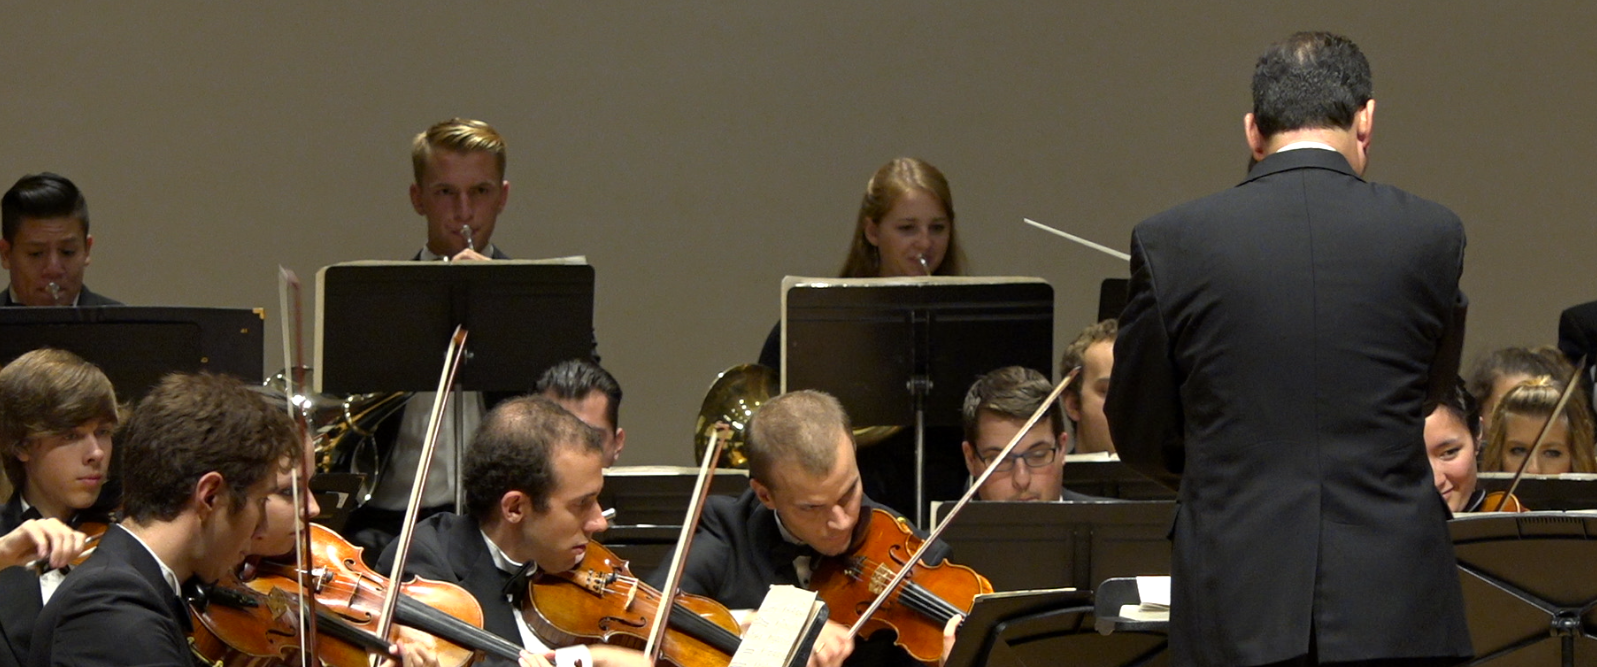 Chamber Orchestra: October 6, 2015